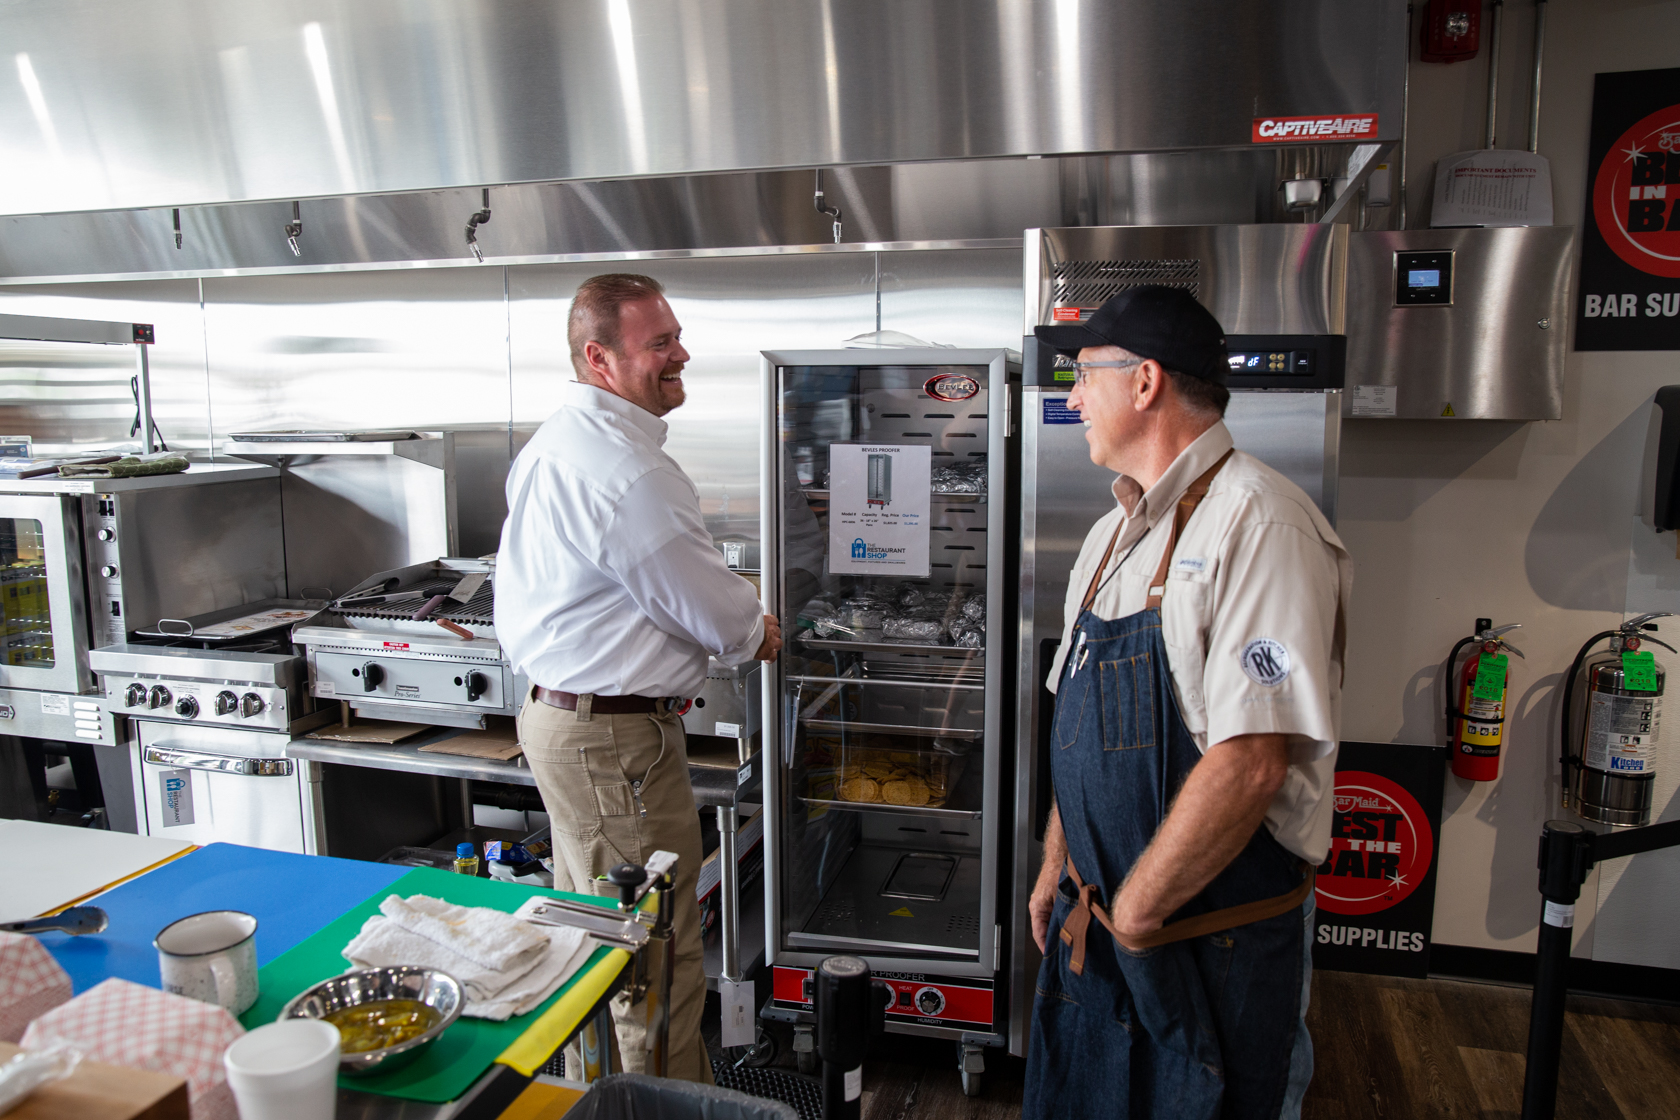 Meet Our Team - We only hire the best because you need a fast fix for your restaurant equipment, and you need it done right the first time! Read on to meet a few of the rockstars that keep Missouri restaurants cooking!